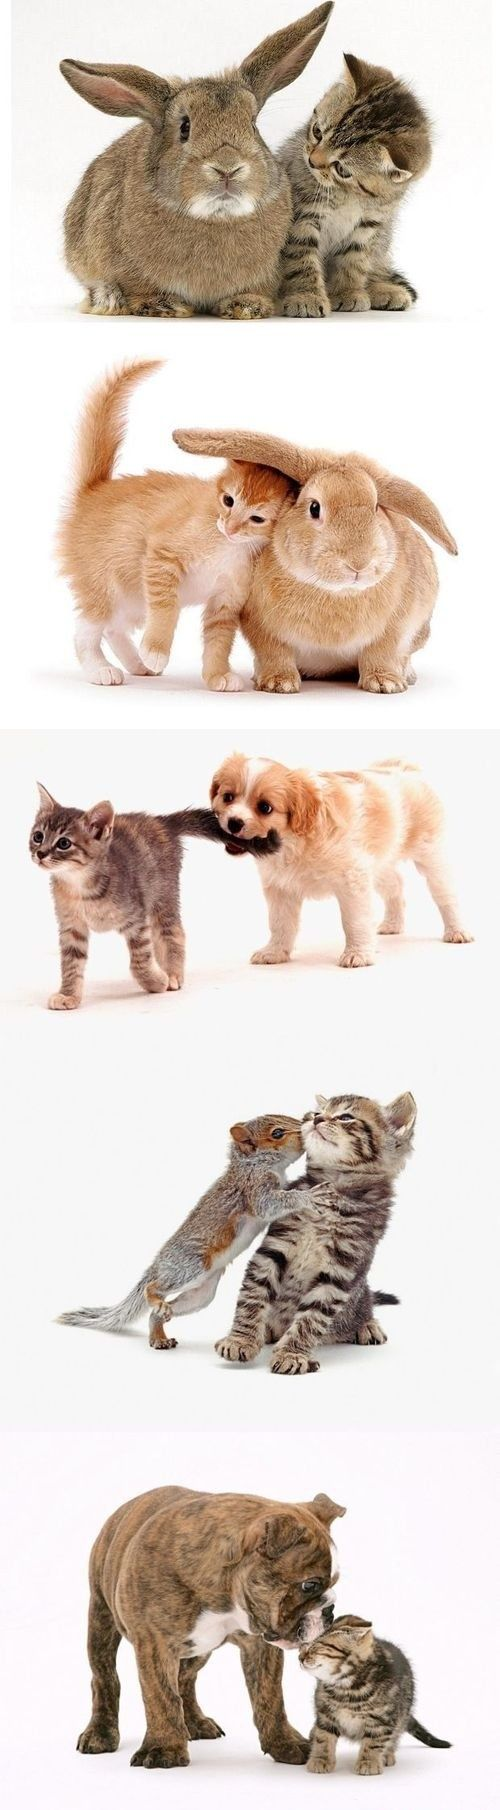 cute animal overload | Awesomely Cute, Cute Kittens, Cute Puppies, Cute Animals, Cute Babies and Cute Things in General